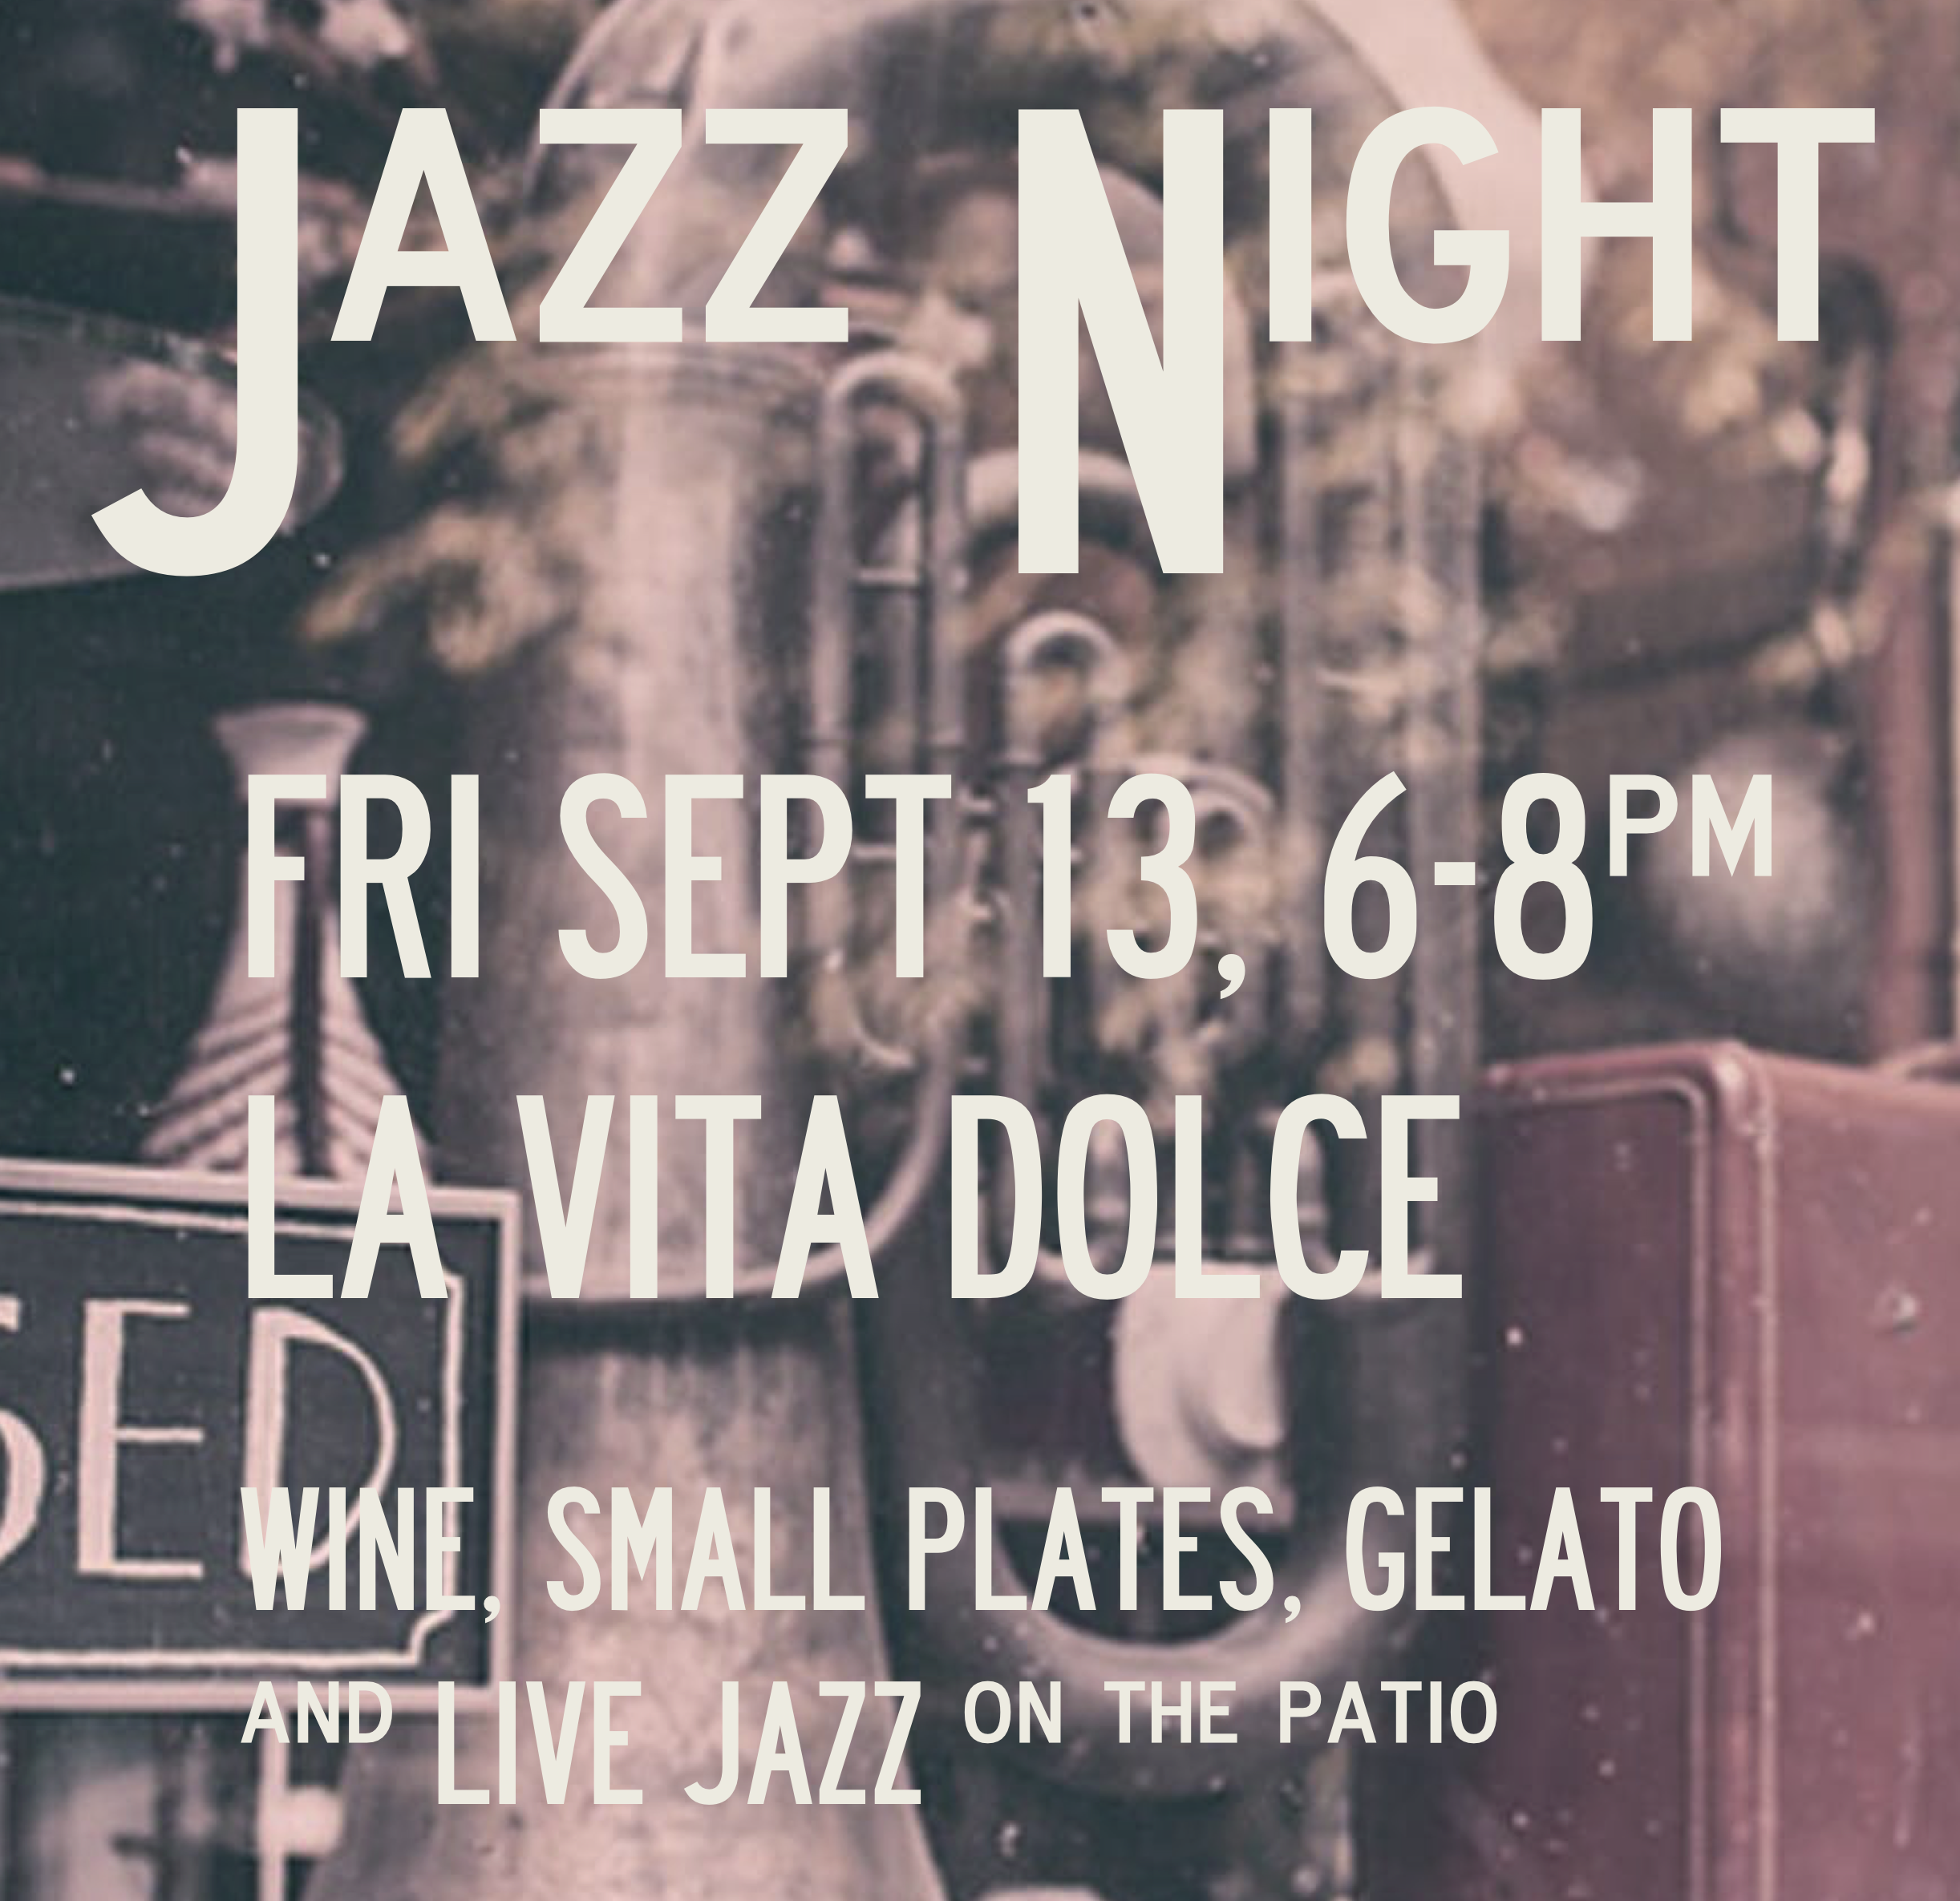 Jazz Night Email Social Image png (1).png